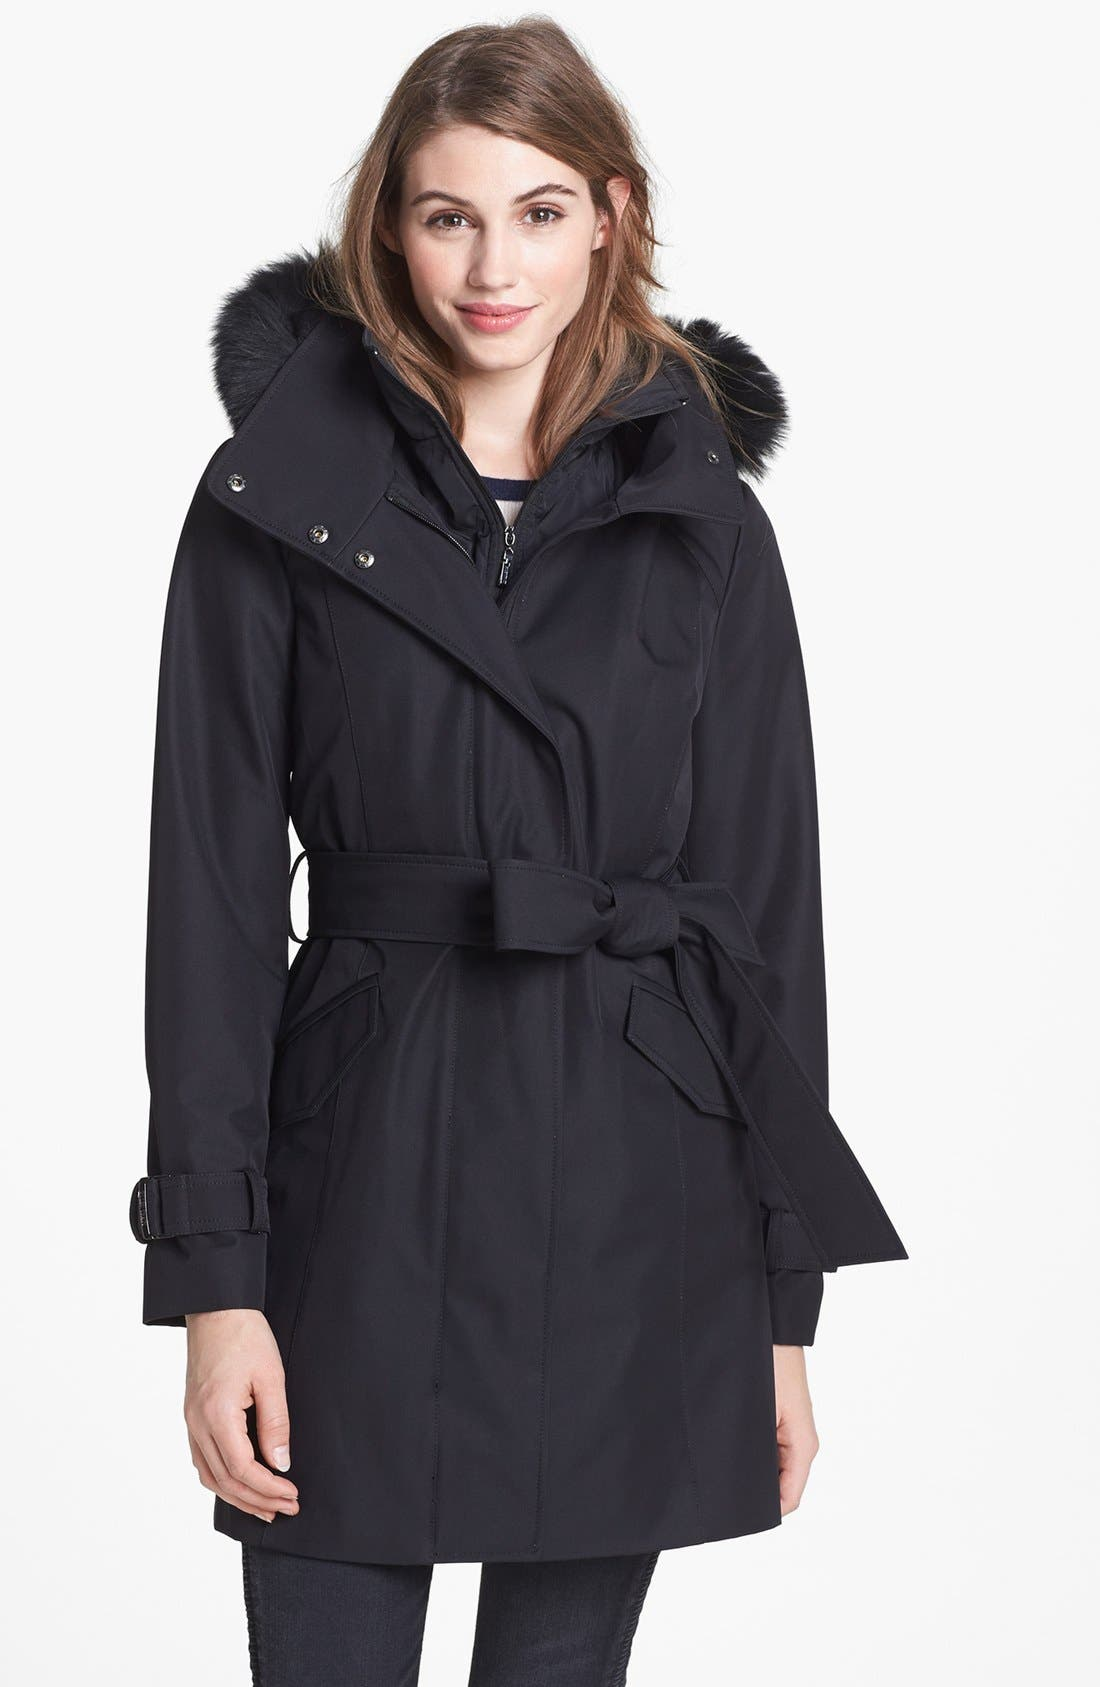 Alternate Image 1 Selected - Collection Ellen Tracy Genuine Fox Fur Trim Belted Raincoat (Nordstrom Exclusive)